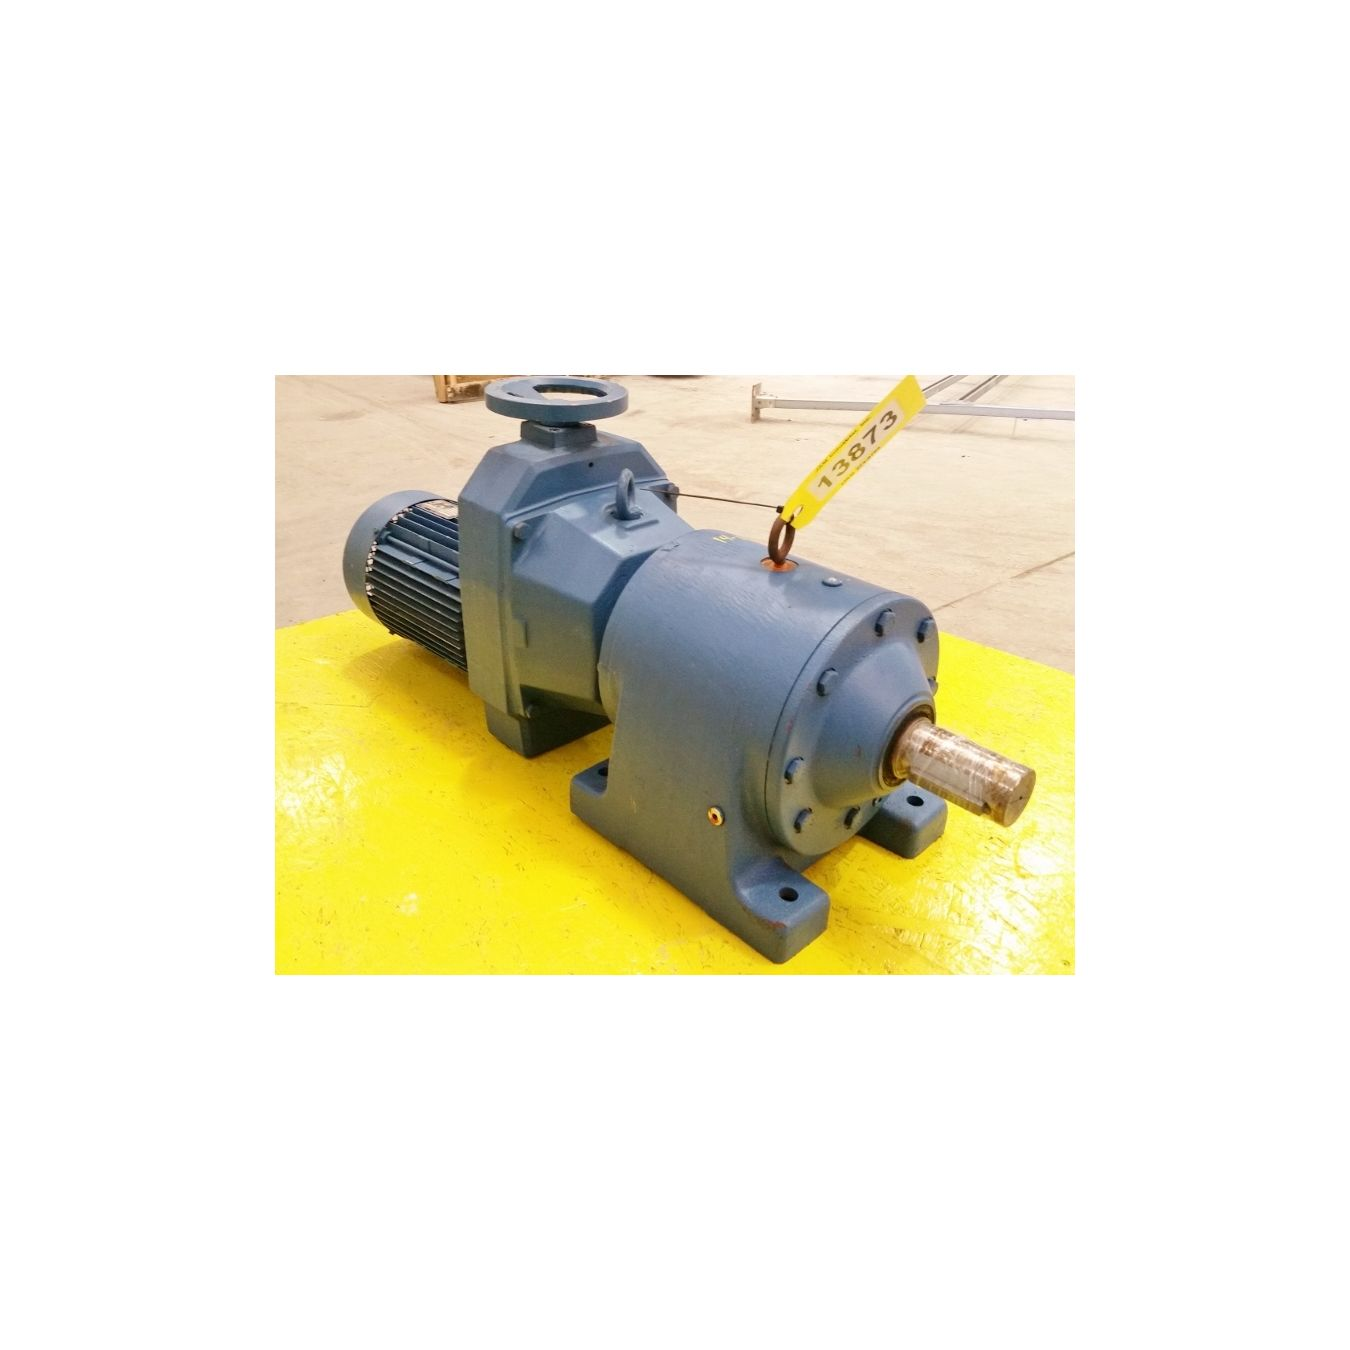 Used sew eurodrive 7 5 hp gear motor type r80d35dv13234 for Sew motors and drives